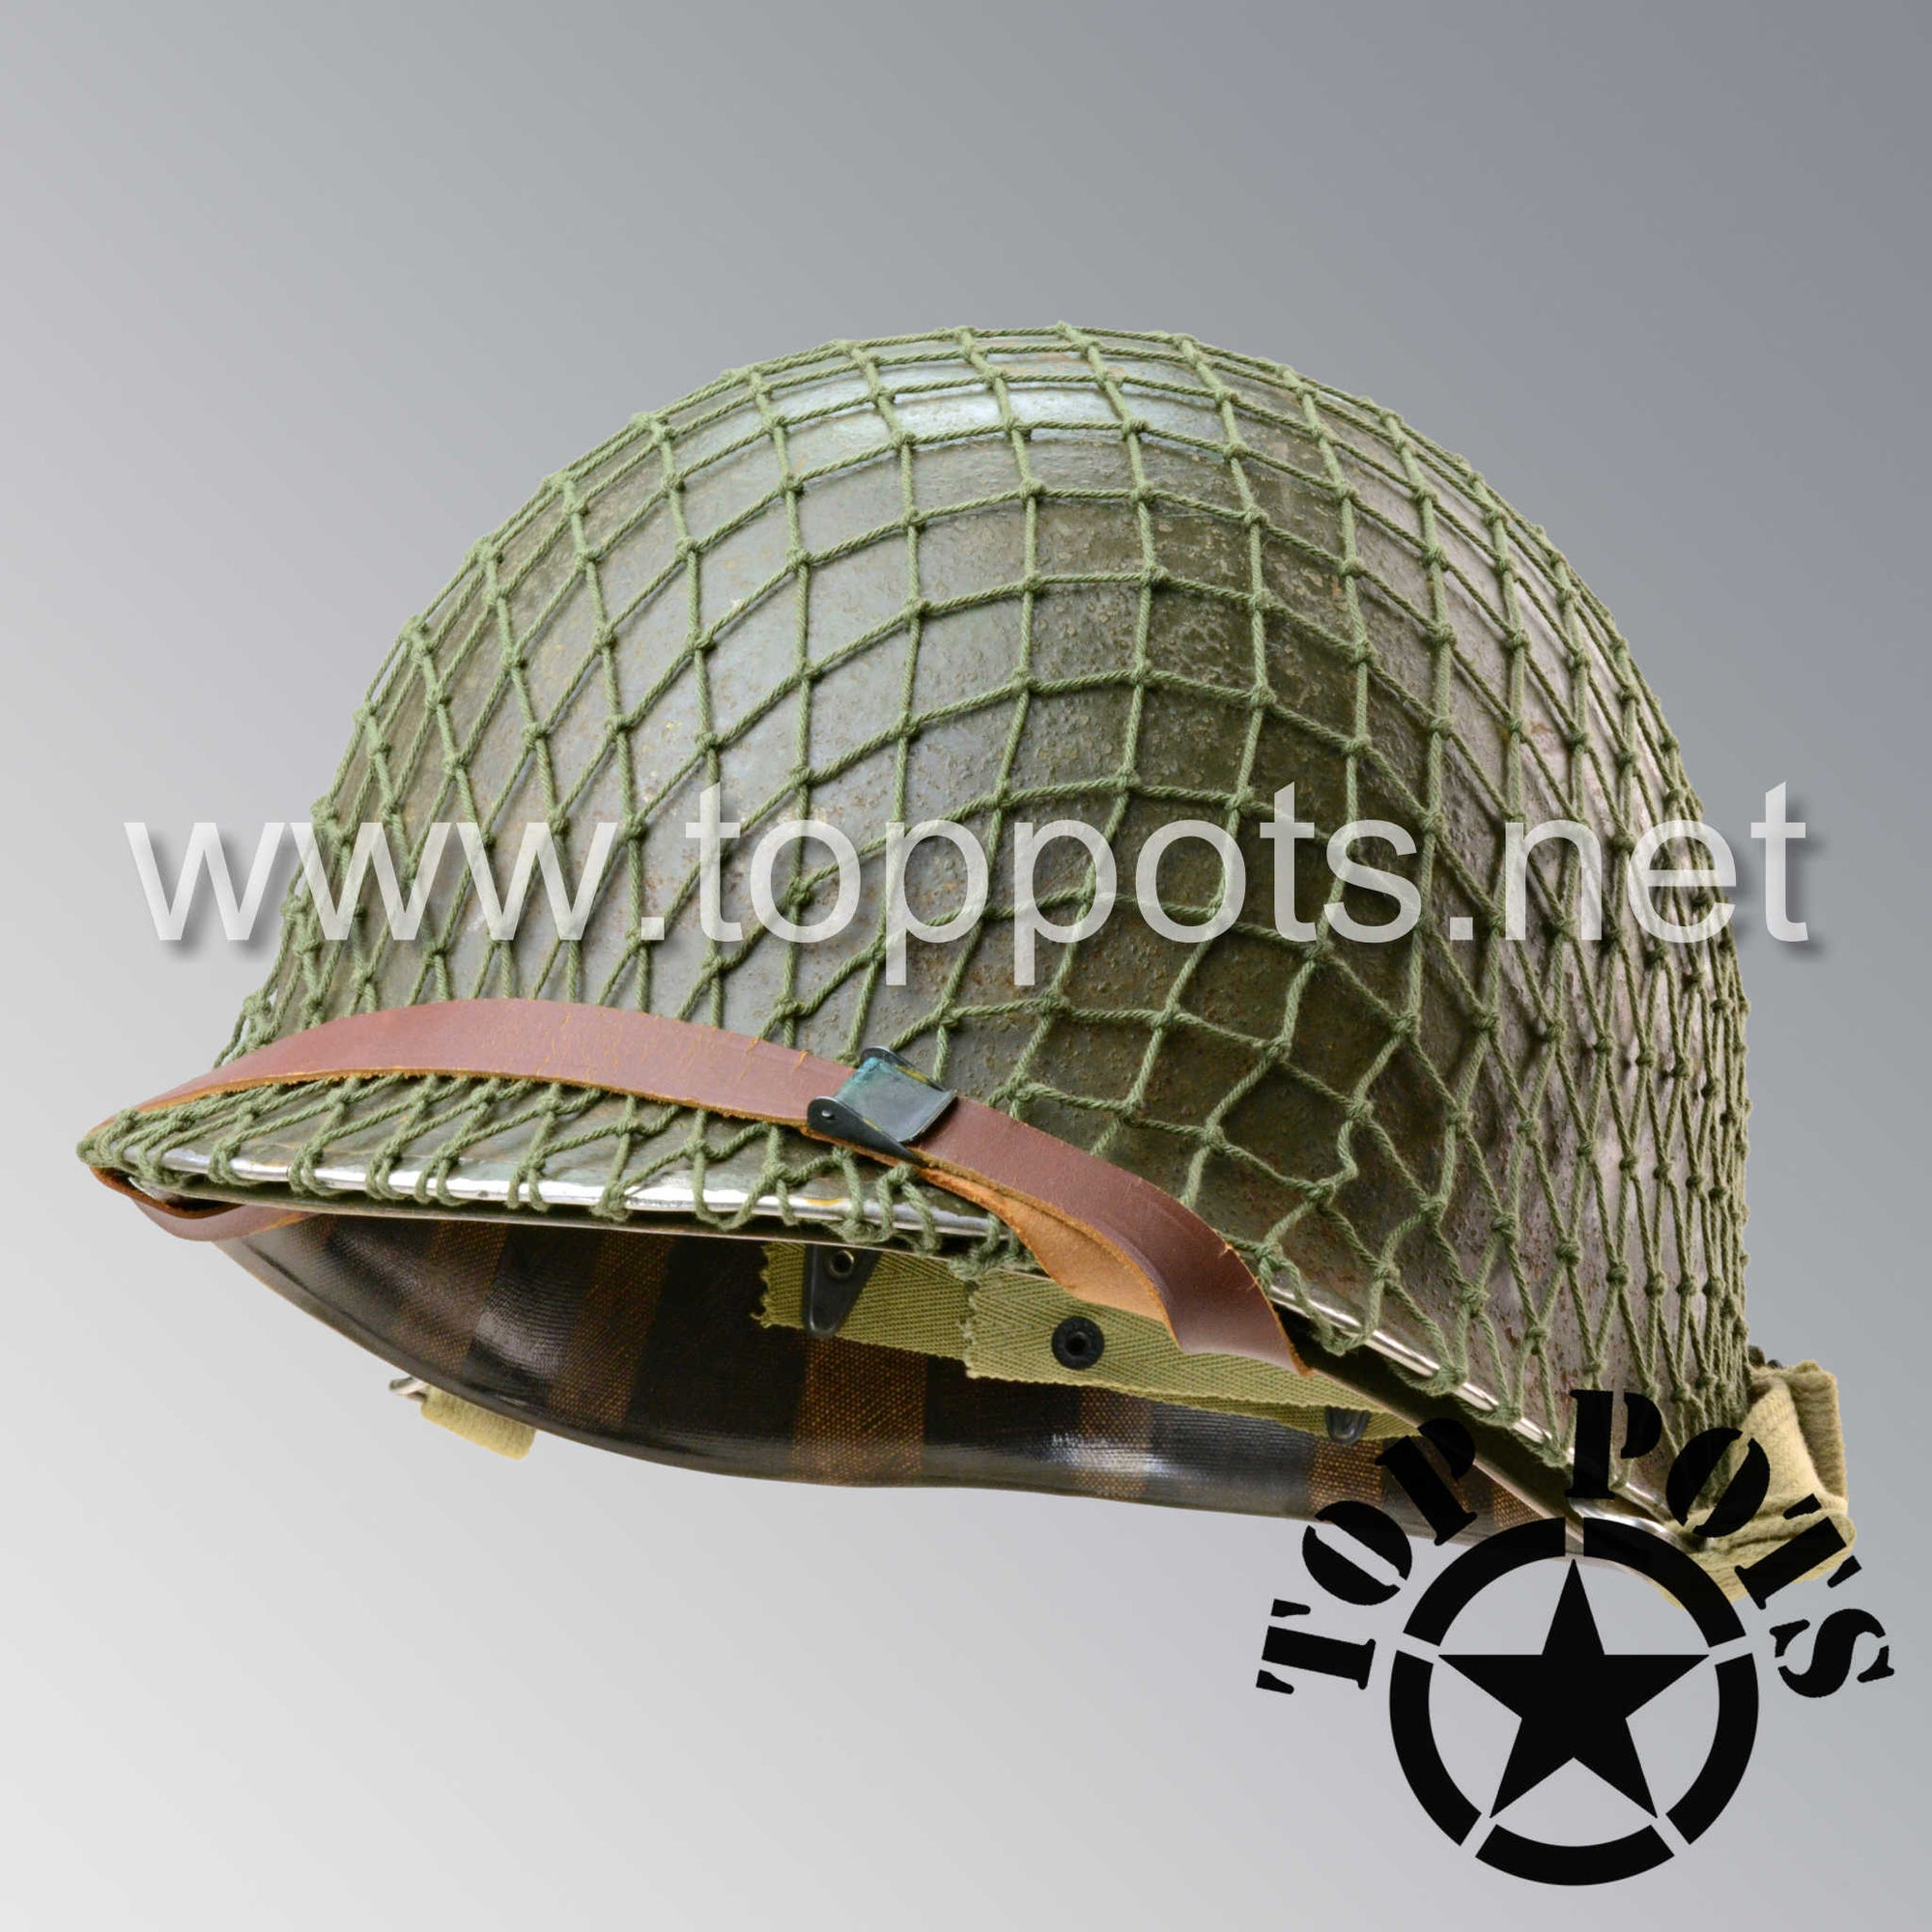 Image 1 of WWII US Army Aged Original M1 Infantry Helmet Swivel Bale Shell and Liner with 2nd Ranger Diamond and OD 7 Net